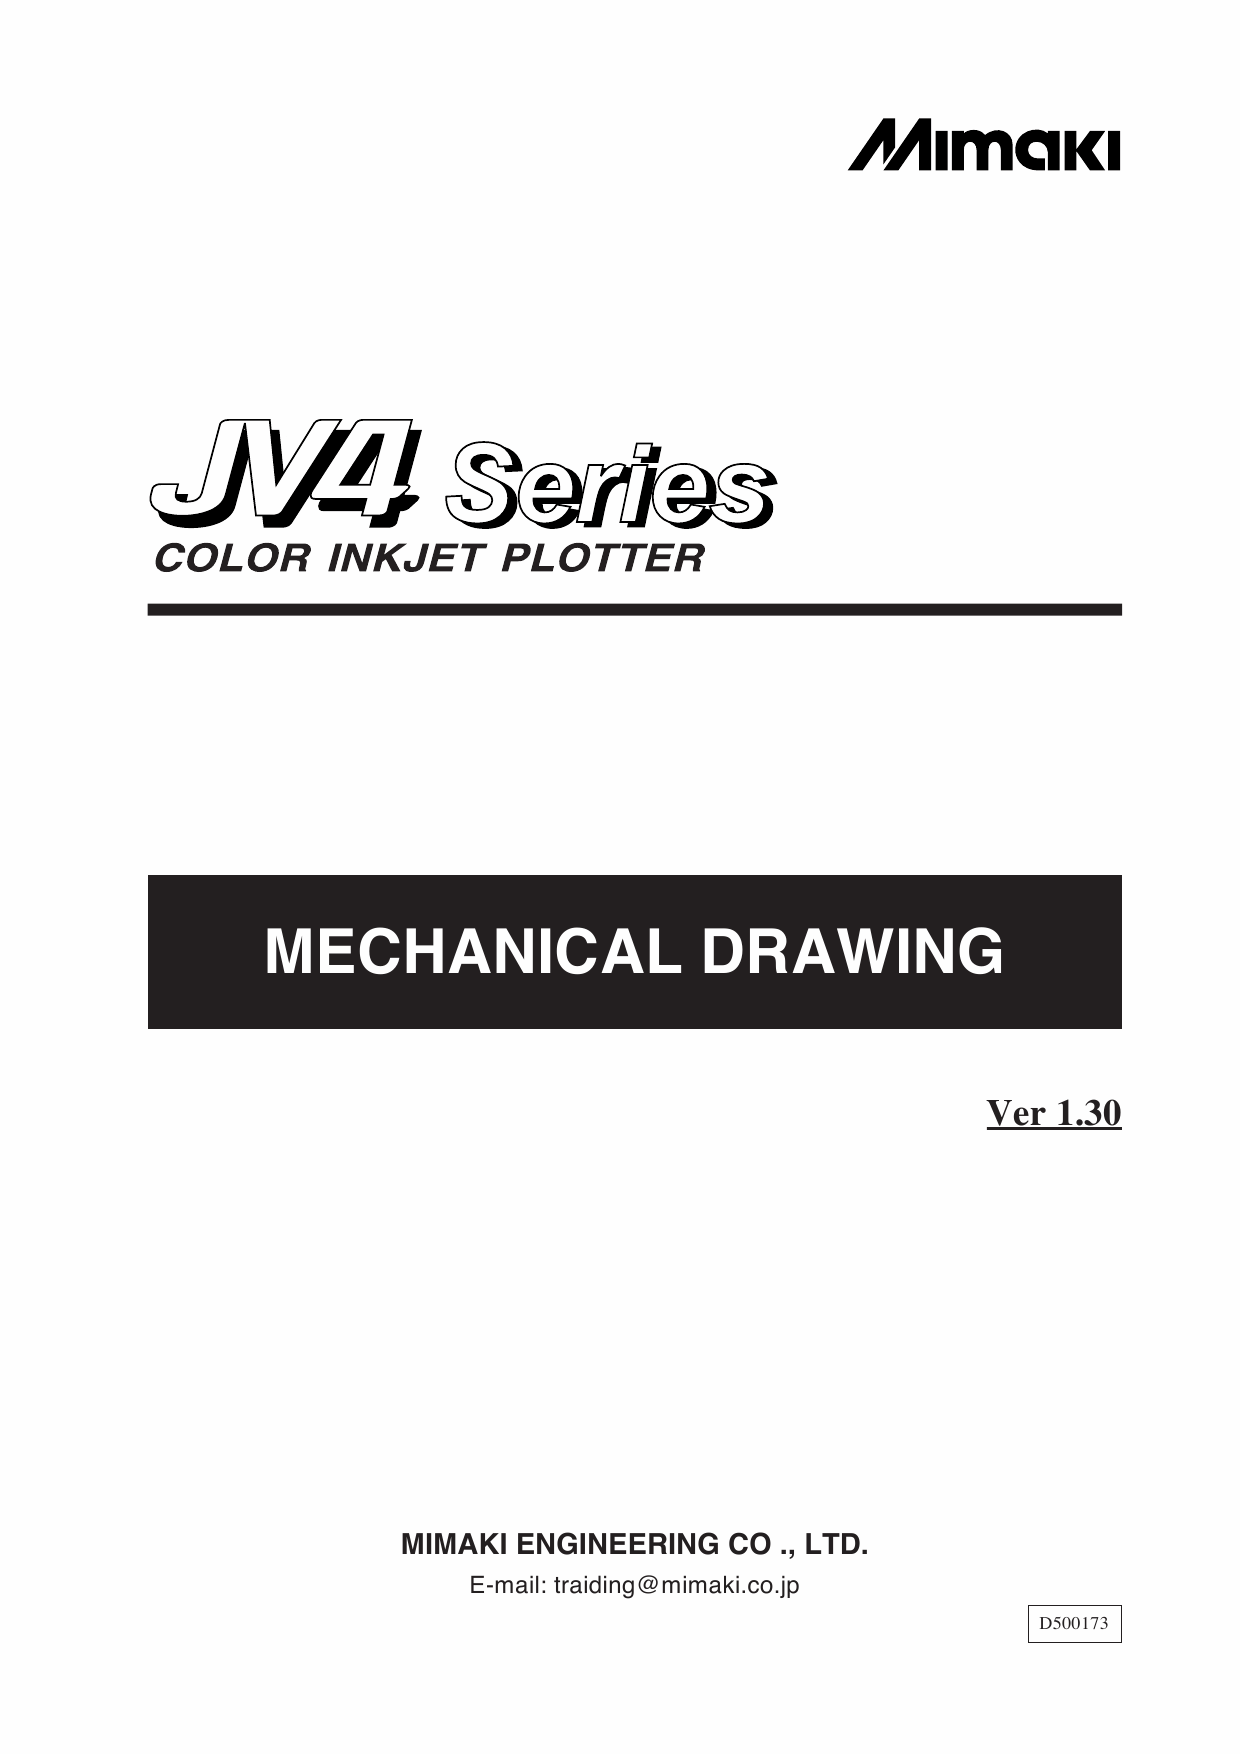 MIMAKI JV4 130 160 180 MECHANICAL DRAWING Parts Manual-1